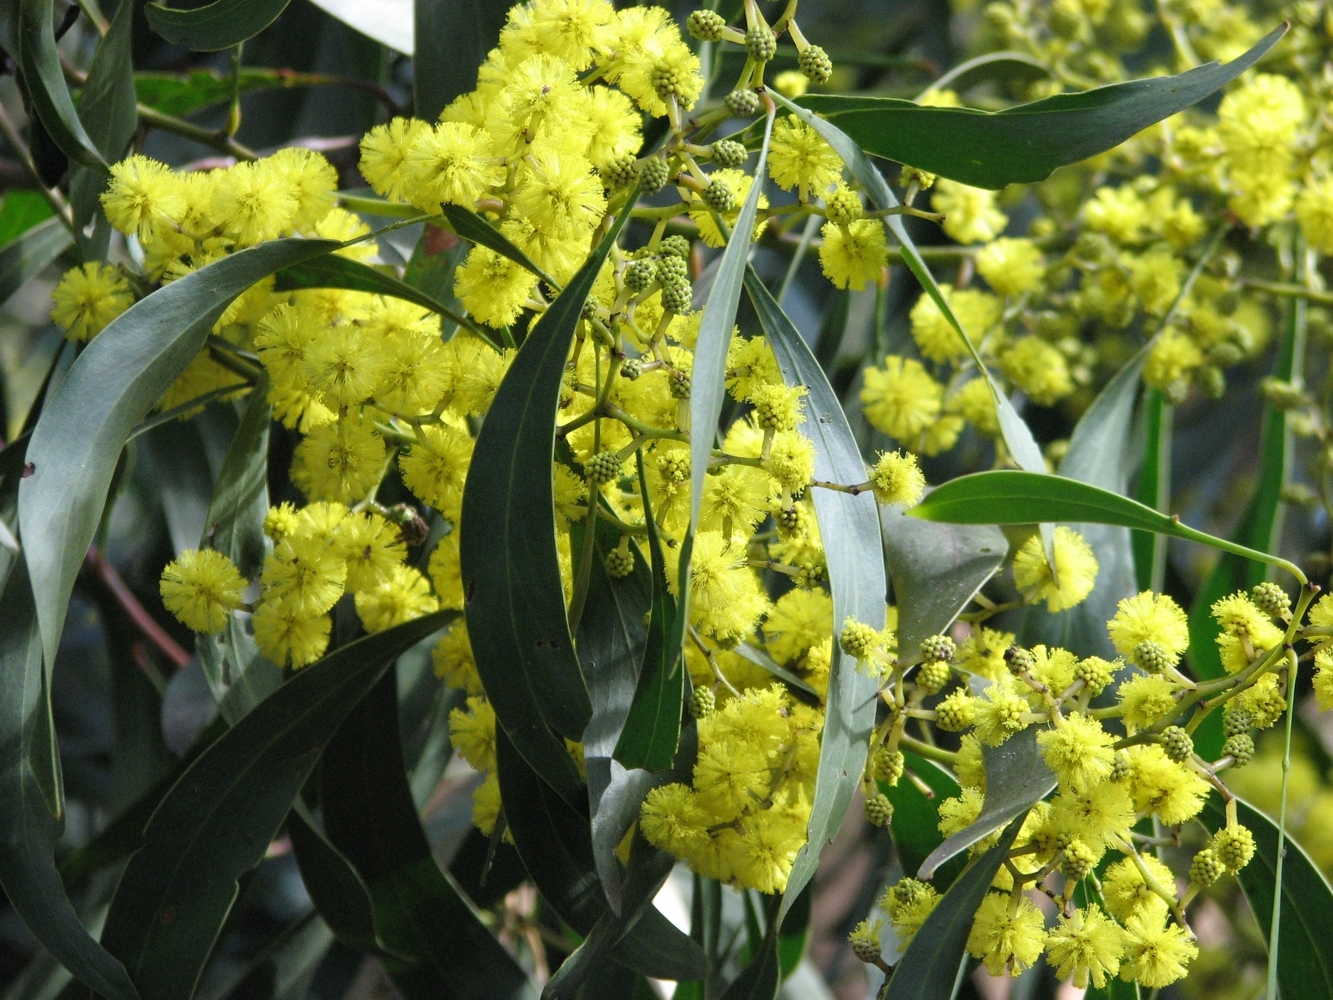 DMT is a naturally occurring substances in members of the Acacia species, many of which are native to Australia.